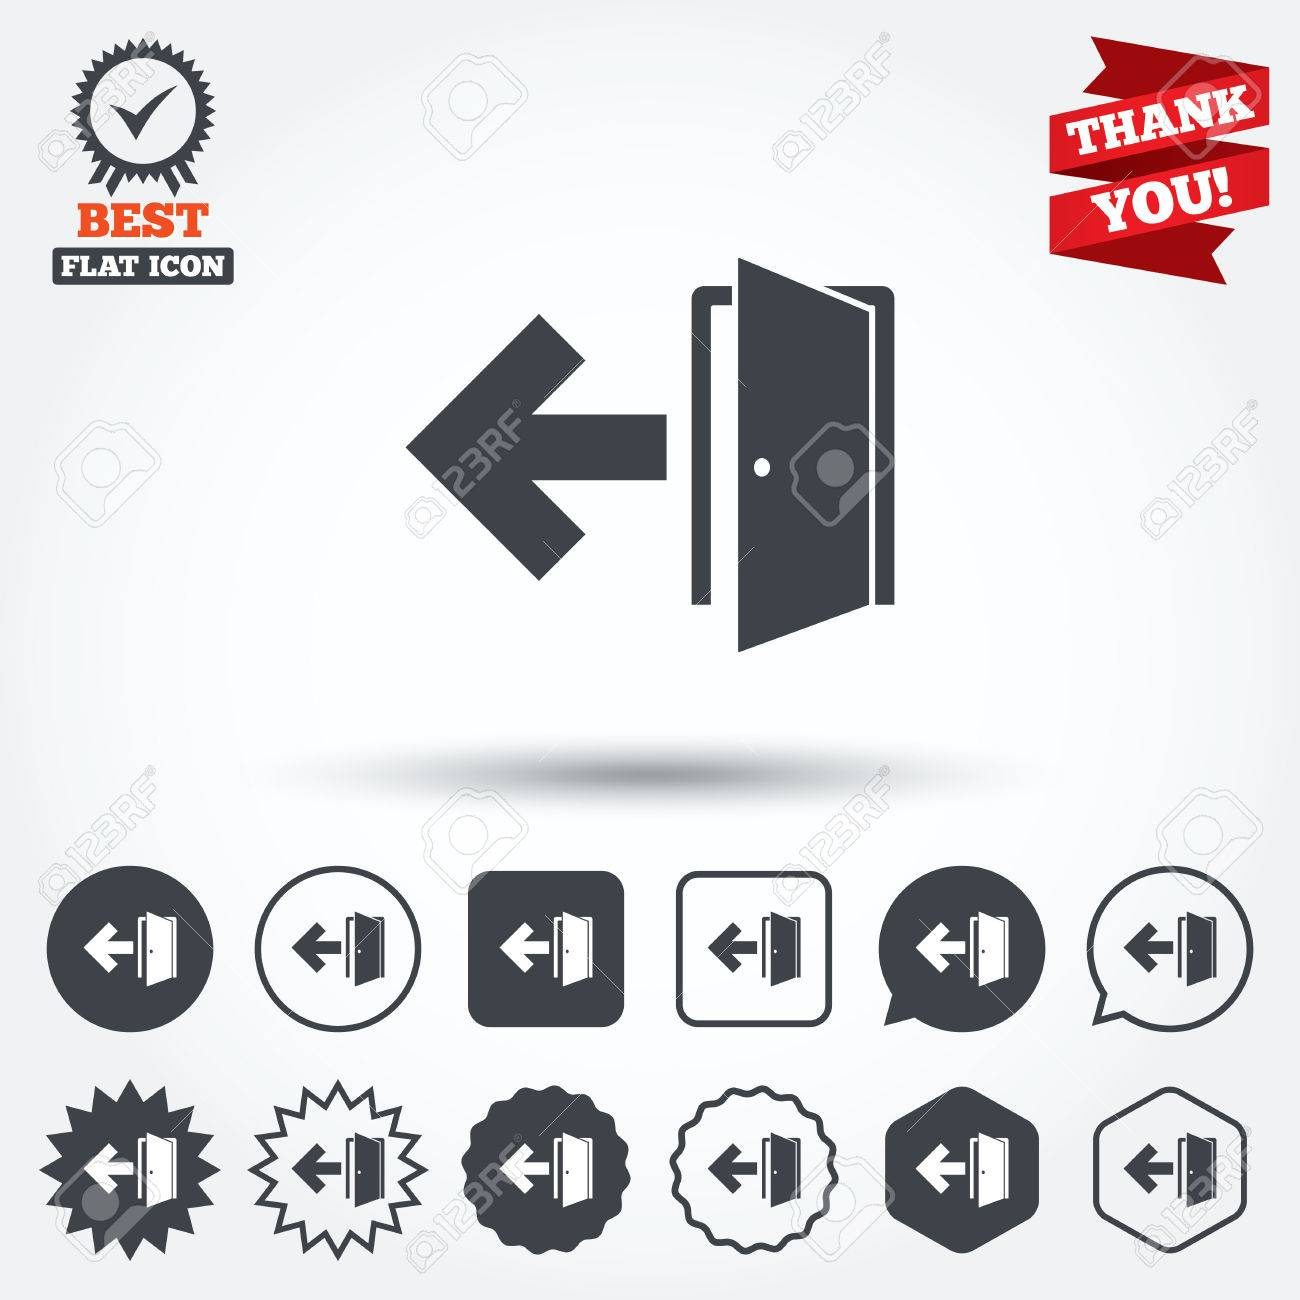 Emergency exit sign icon door with left arrow symbol fire exit emergency exit sign icon door with left arrow symbol fire exit circle buycottarizona Images